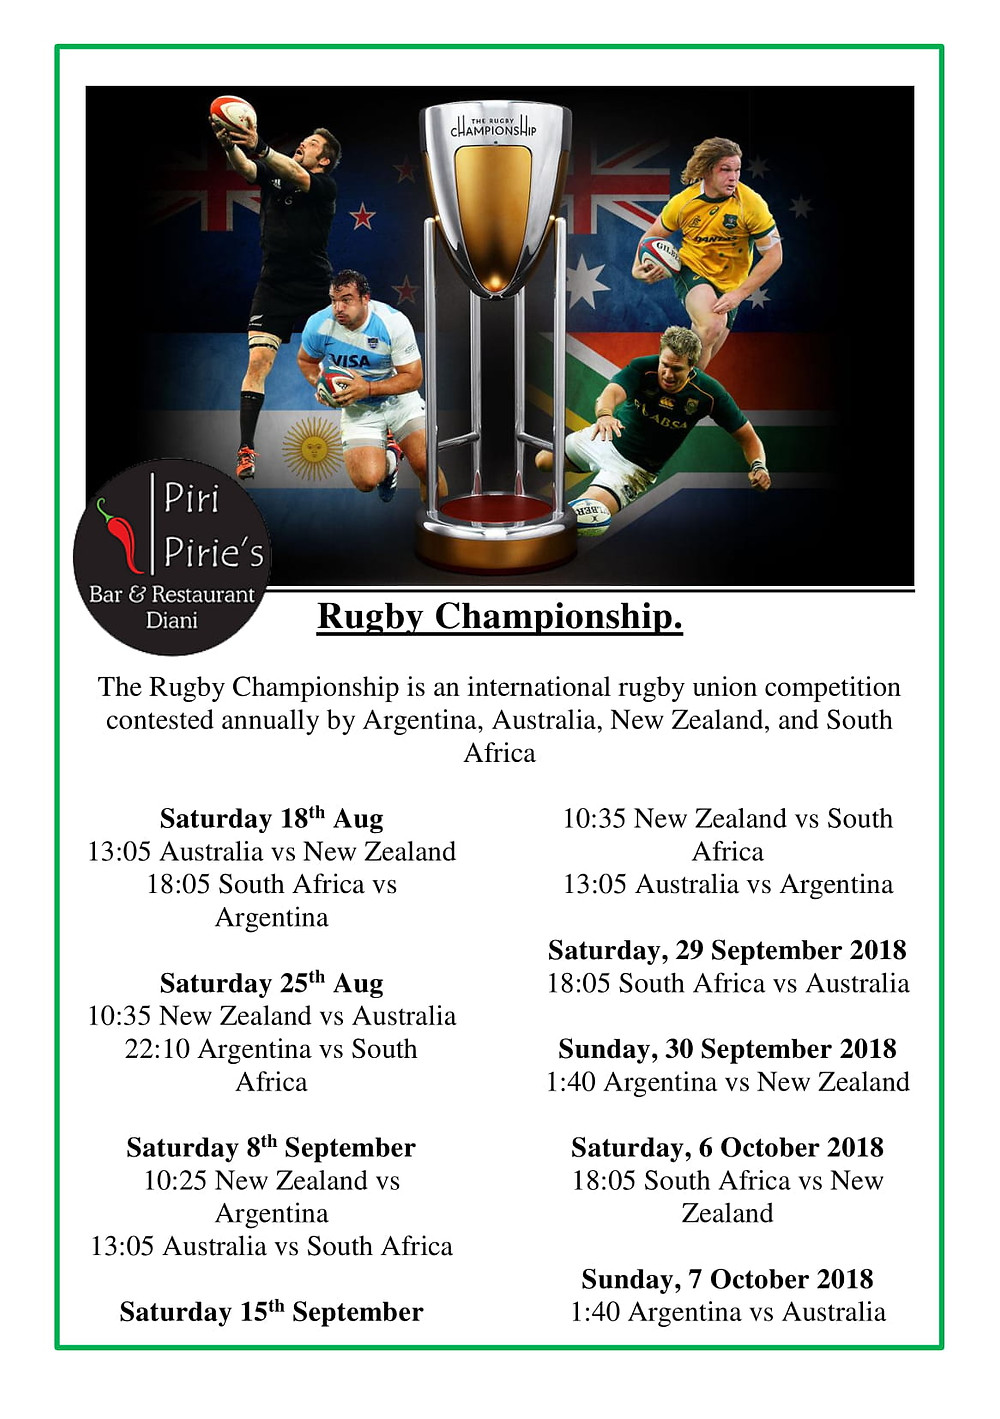 Thr Rugby Championship